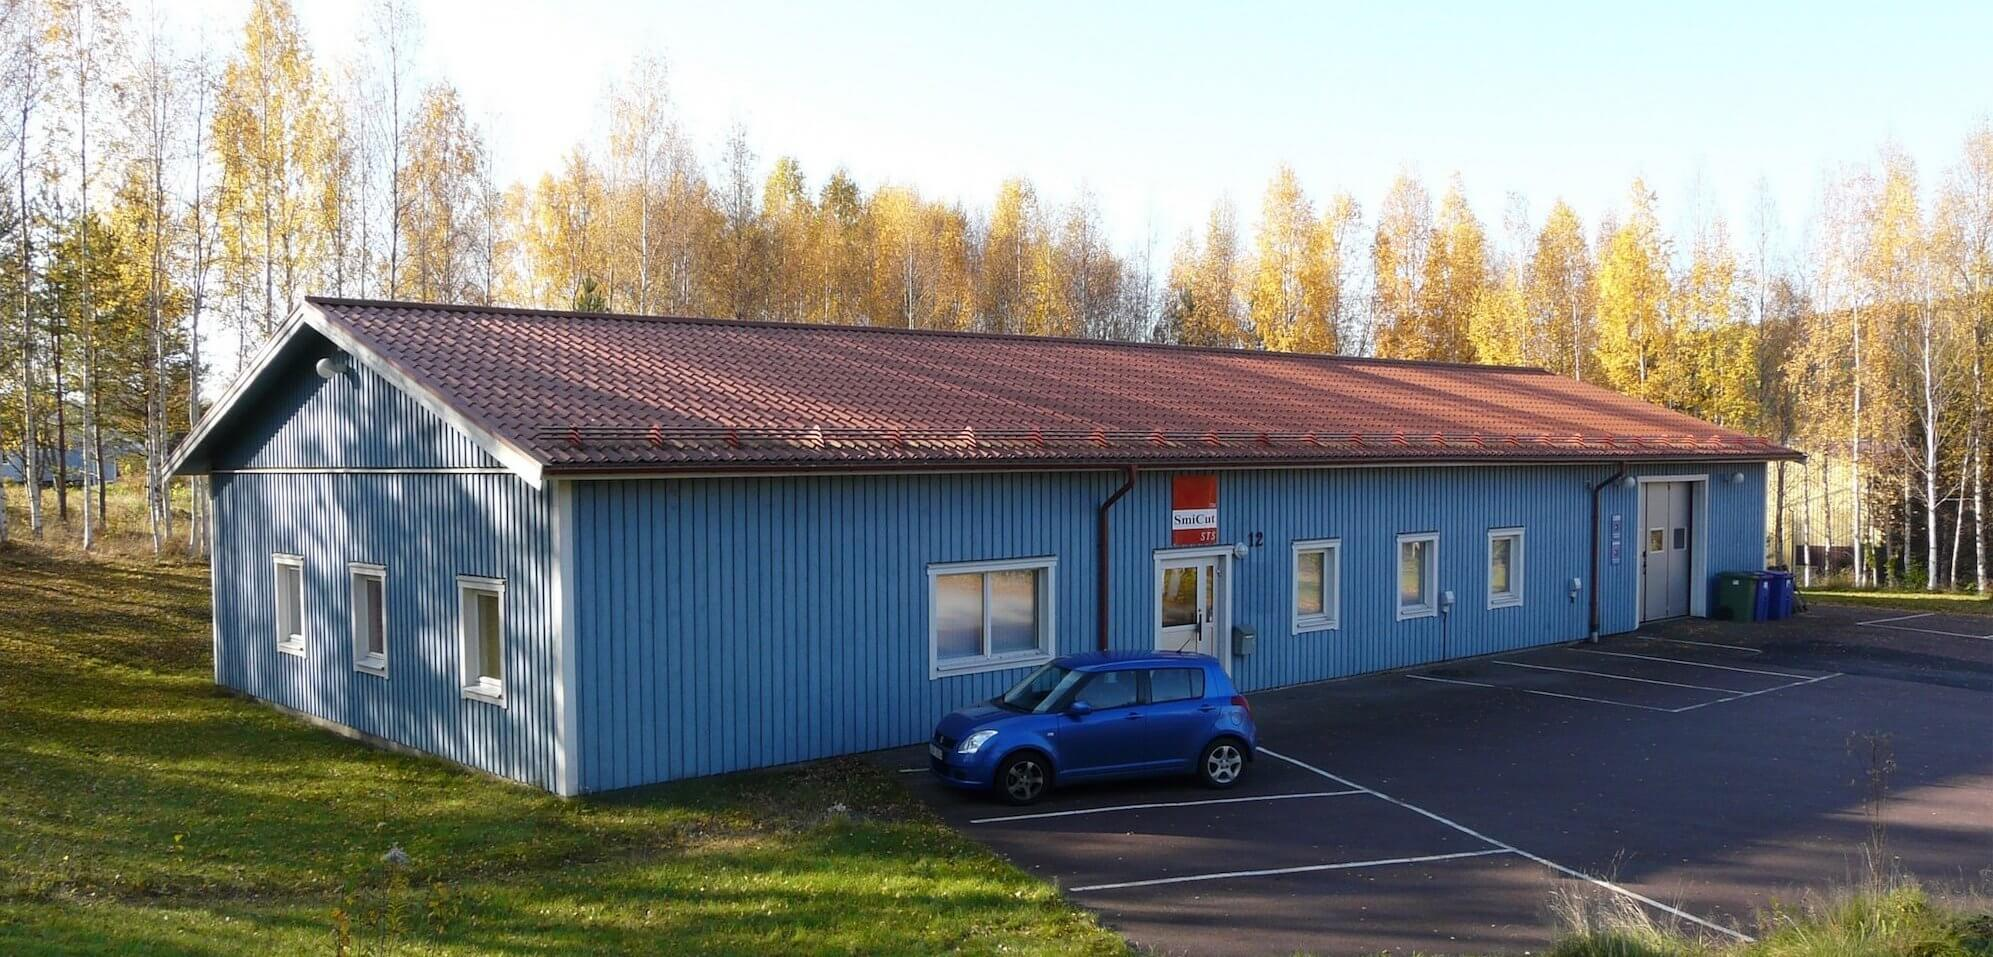 SmiCut building in Ludvika, Sweden.